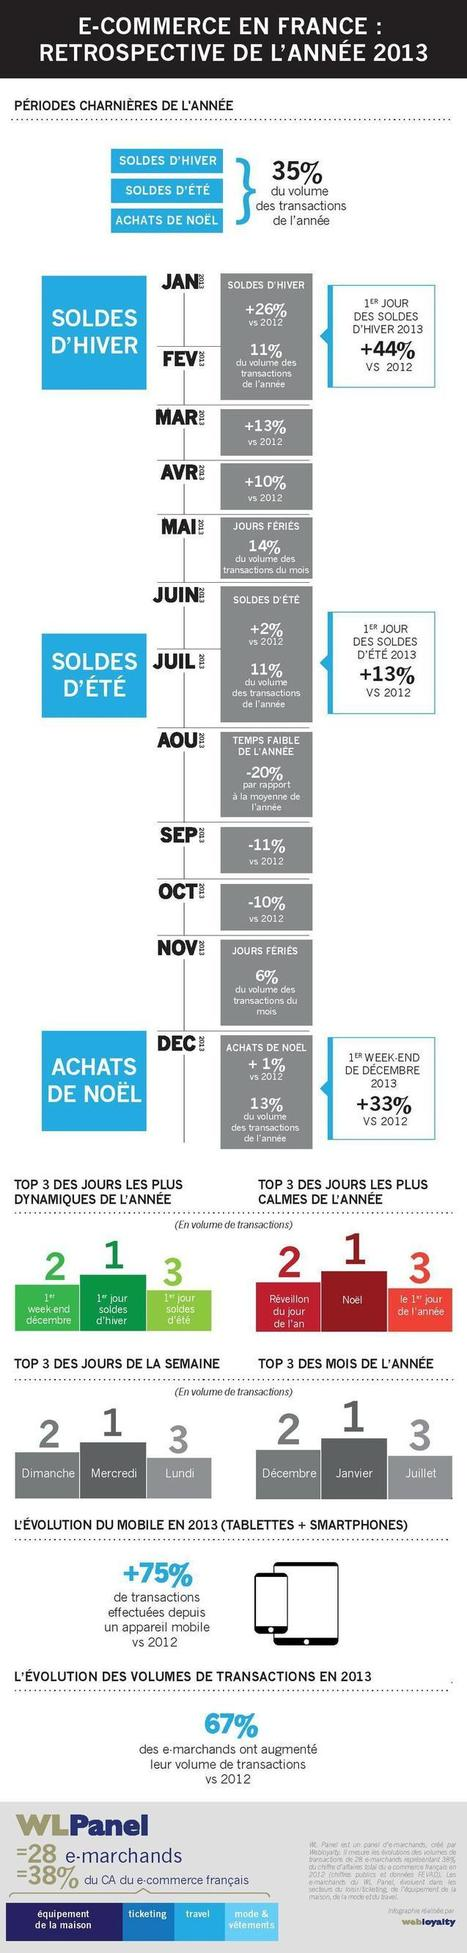 Infographie : les temps forts de l'e-commerce français en 2013 | Infographies E-commerce | Scoop.it